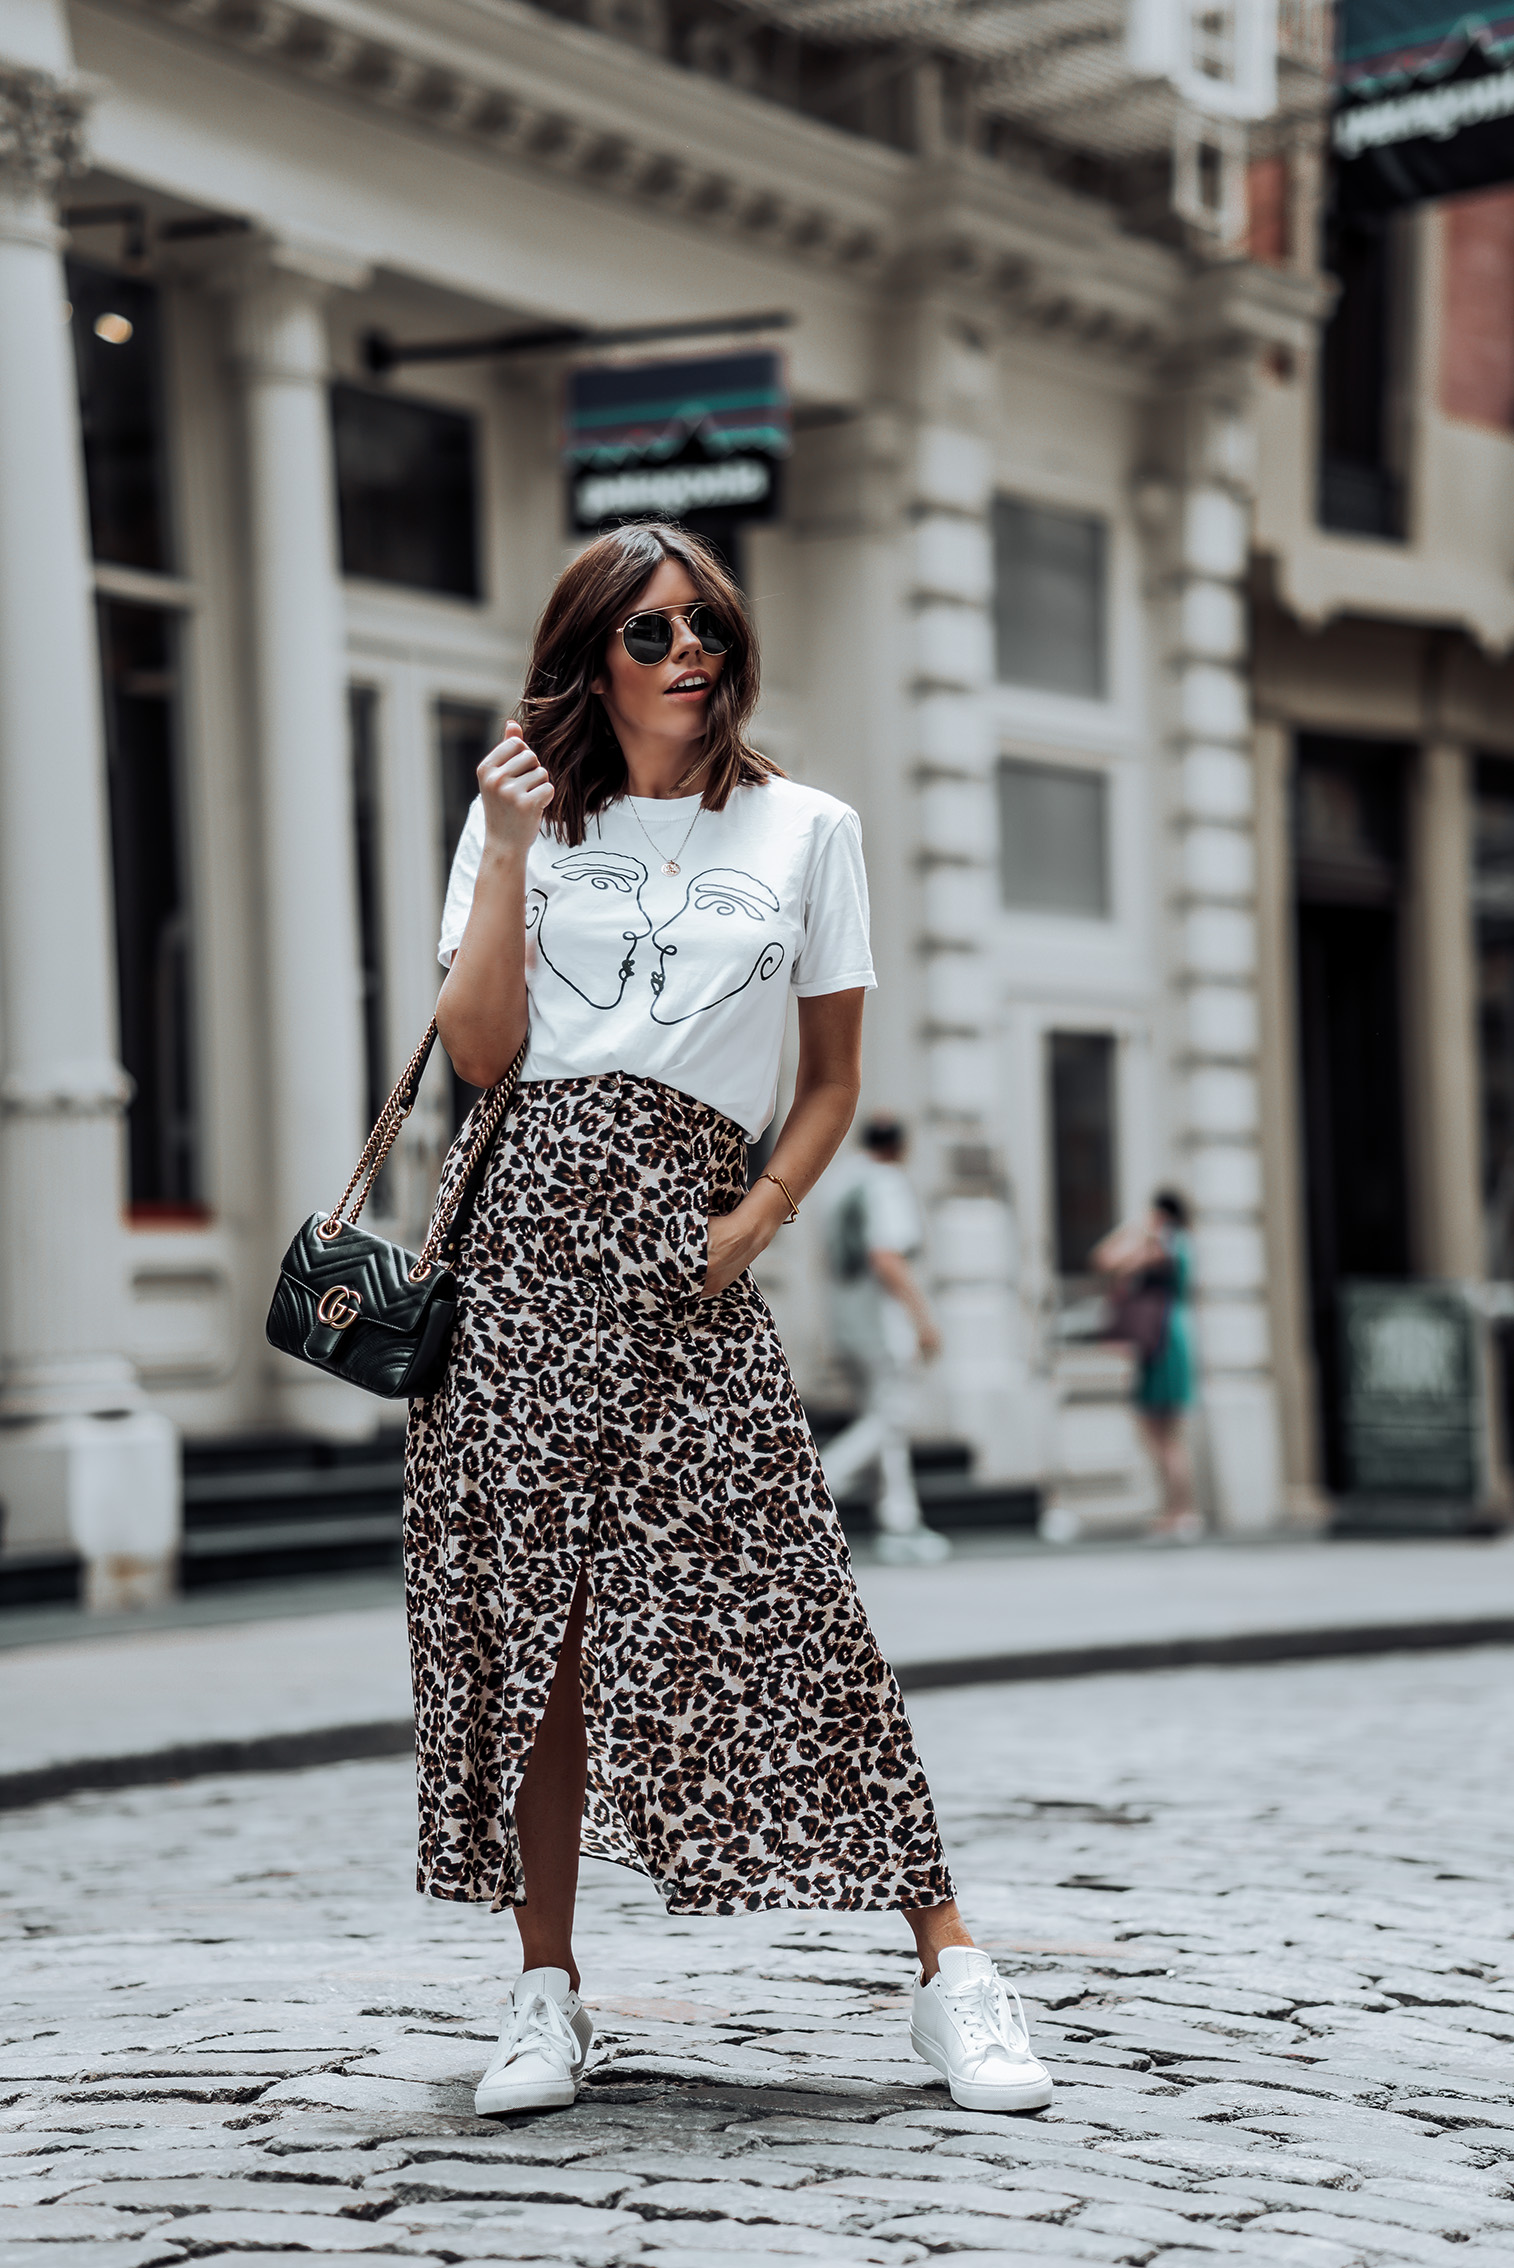 Leopard is the new black |Graphic Tee | Urban Outfitters Leopard Skirt | Gucci Bag | Greats Sneakers | #liketkit #leopard #minimalist #sneakeroutfits #streetstyle